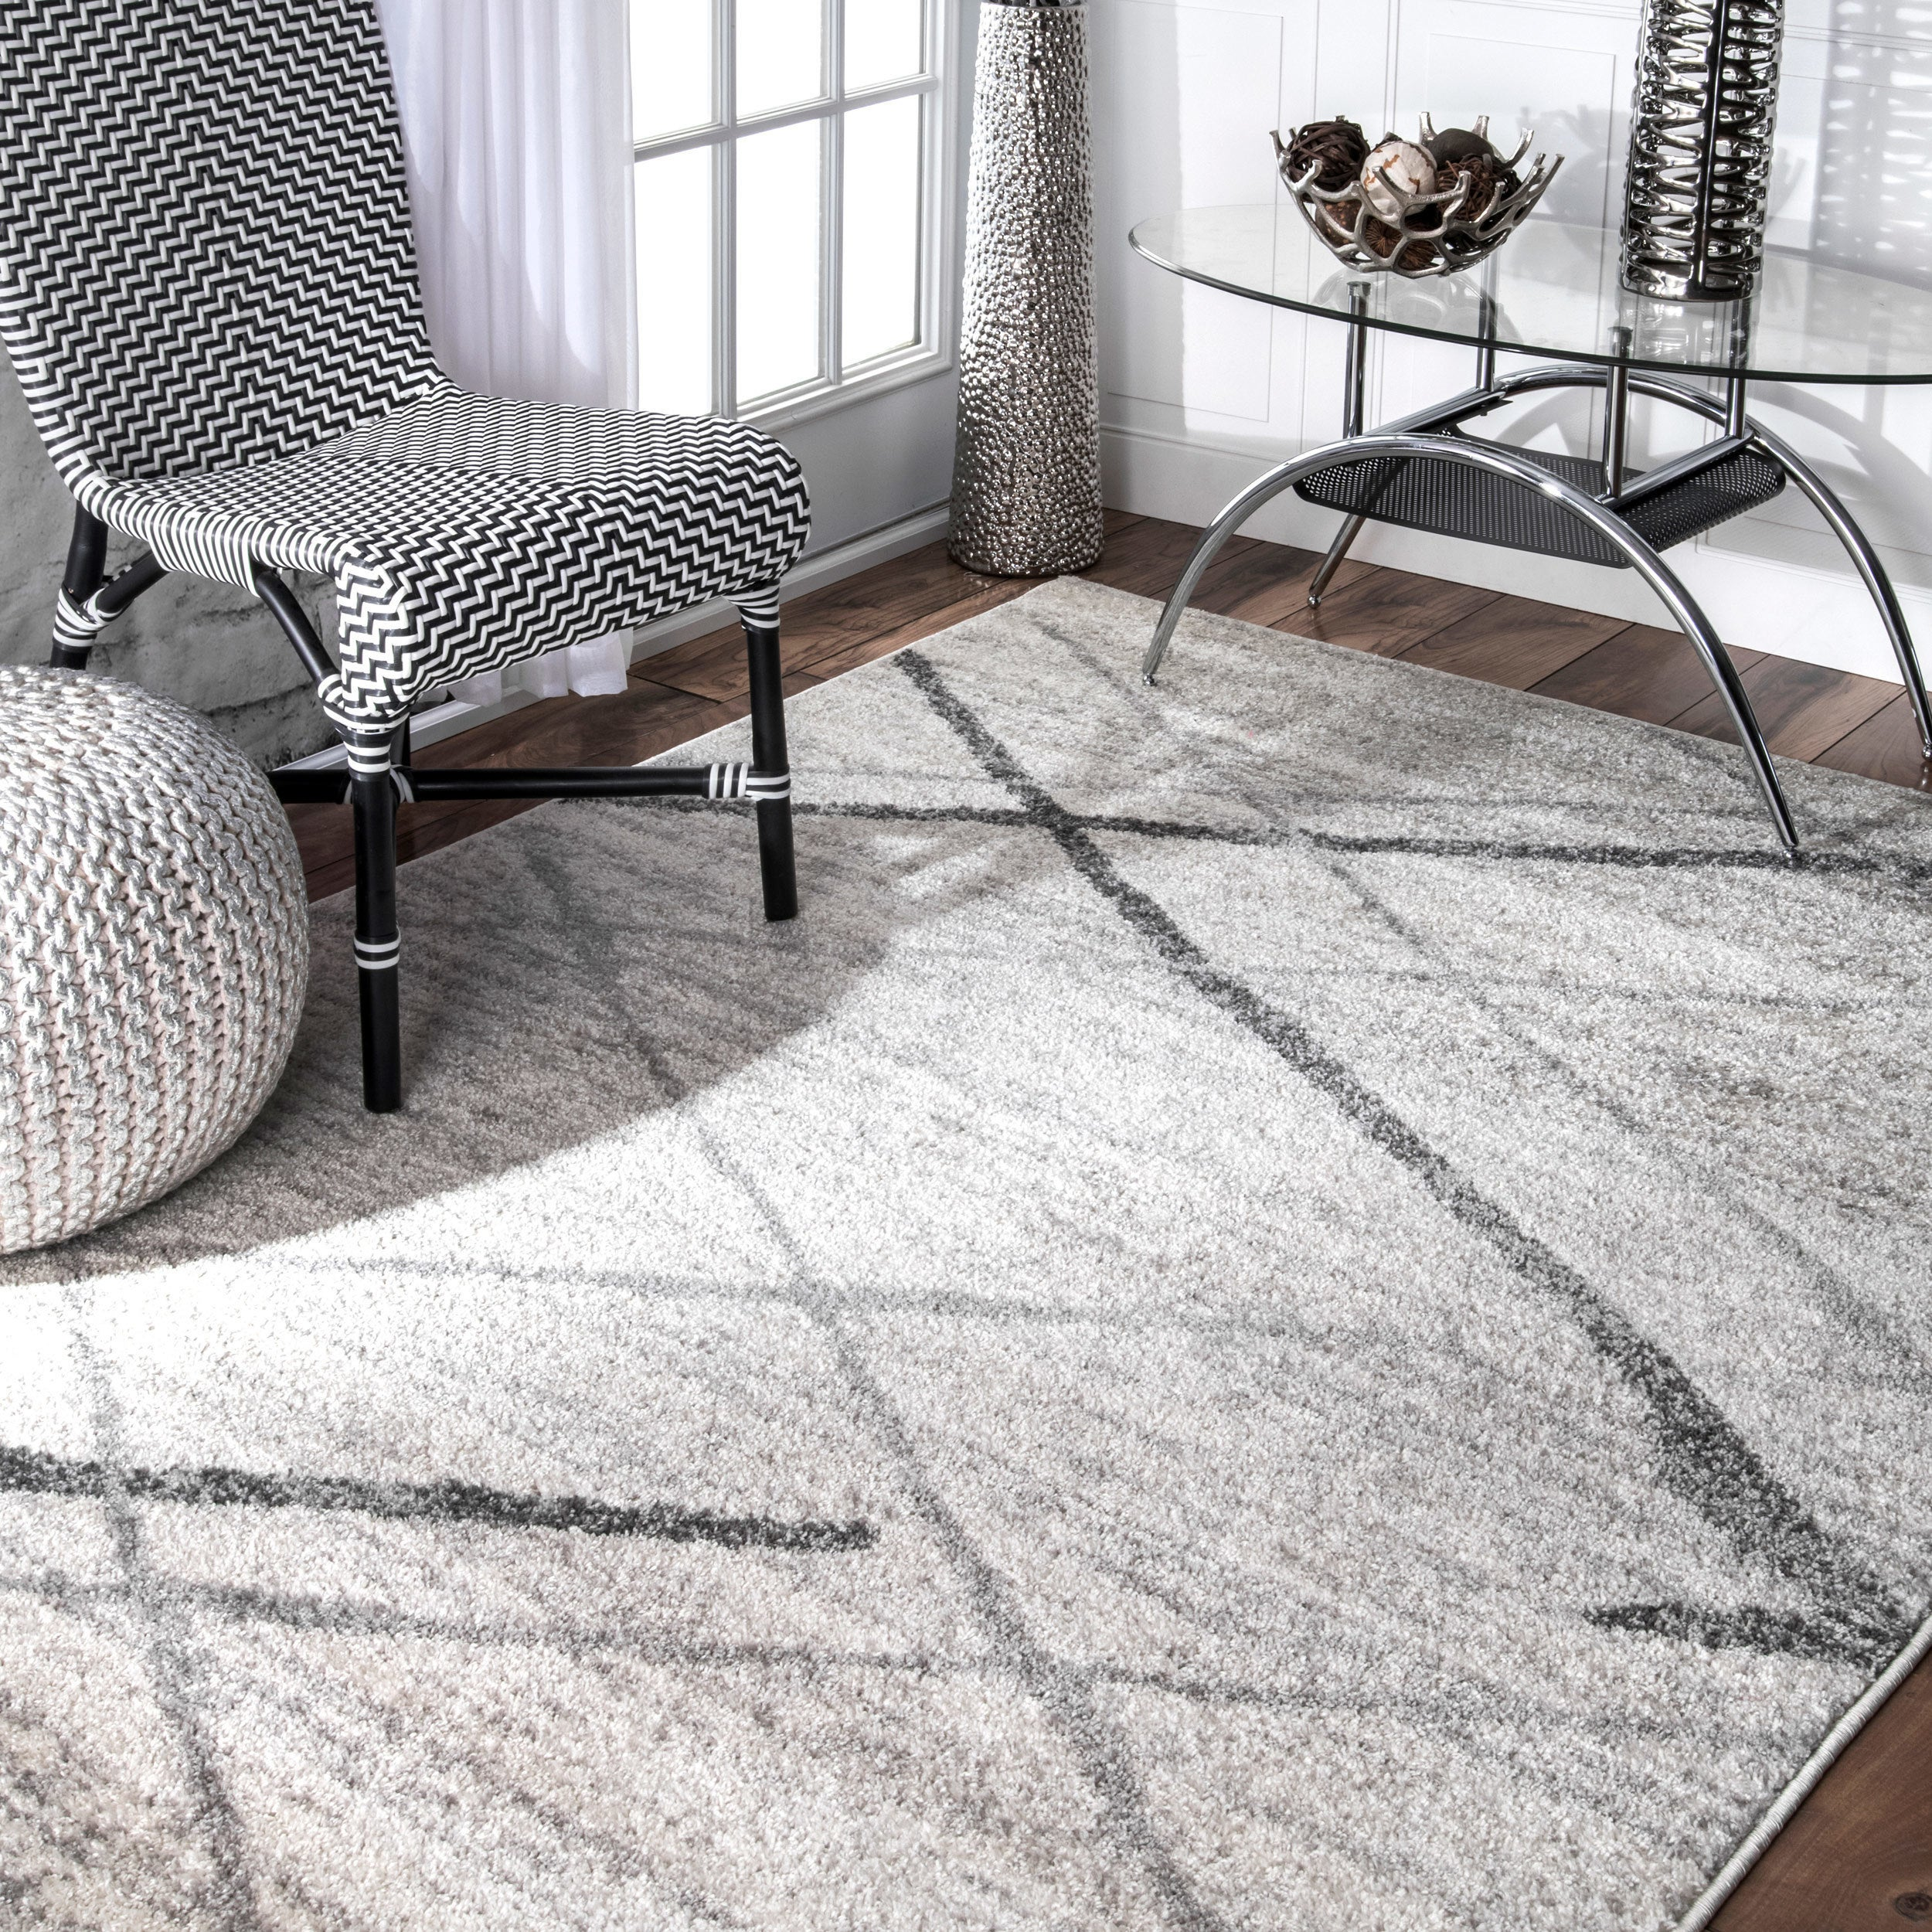 Nuloom Contemporary Striped Grey Rug 7 6 Square Free Shipping Today 25537508